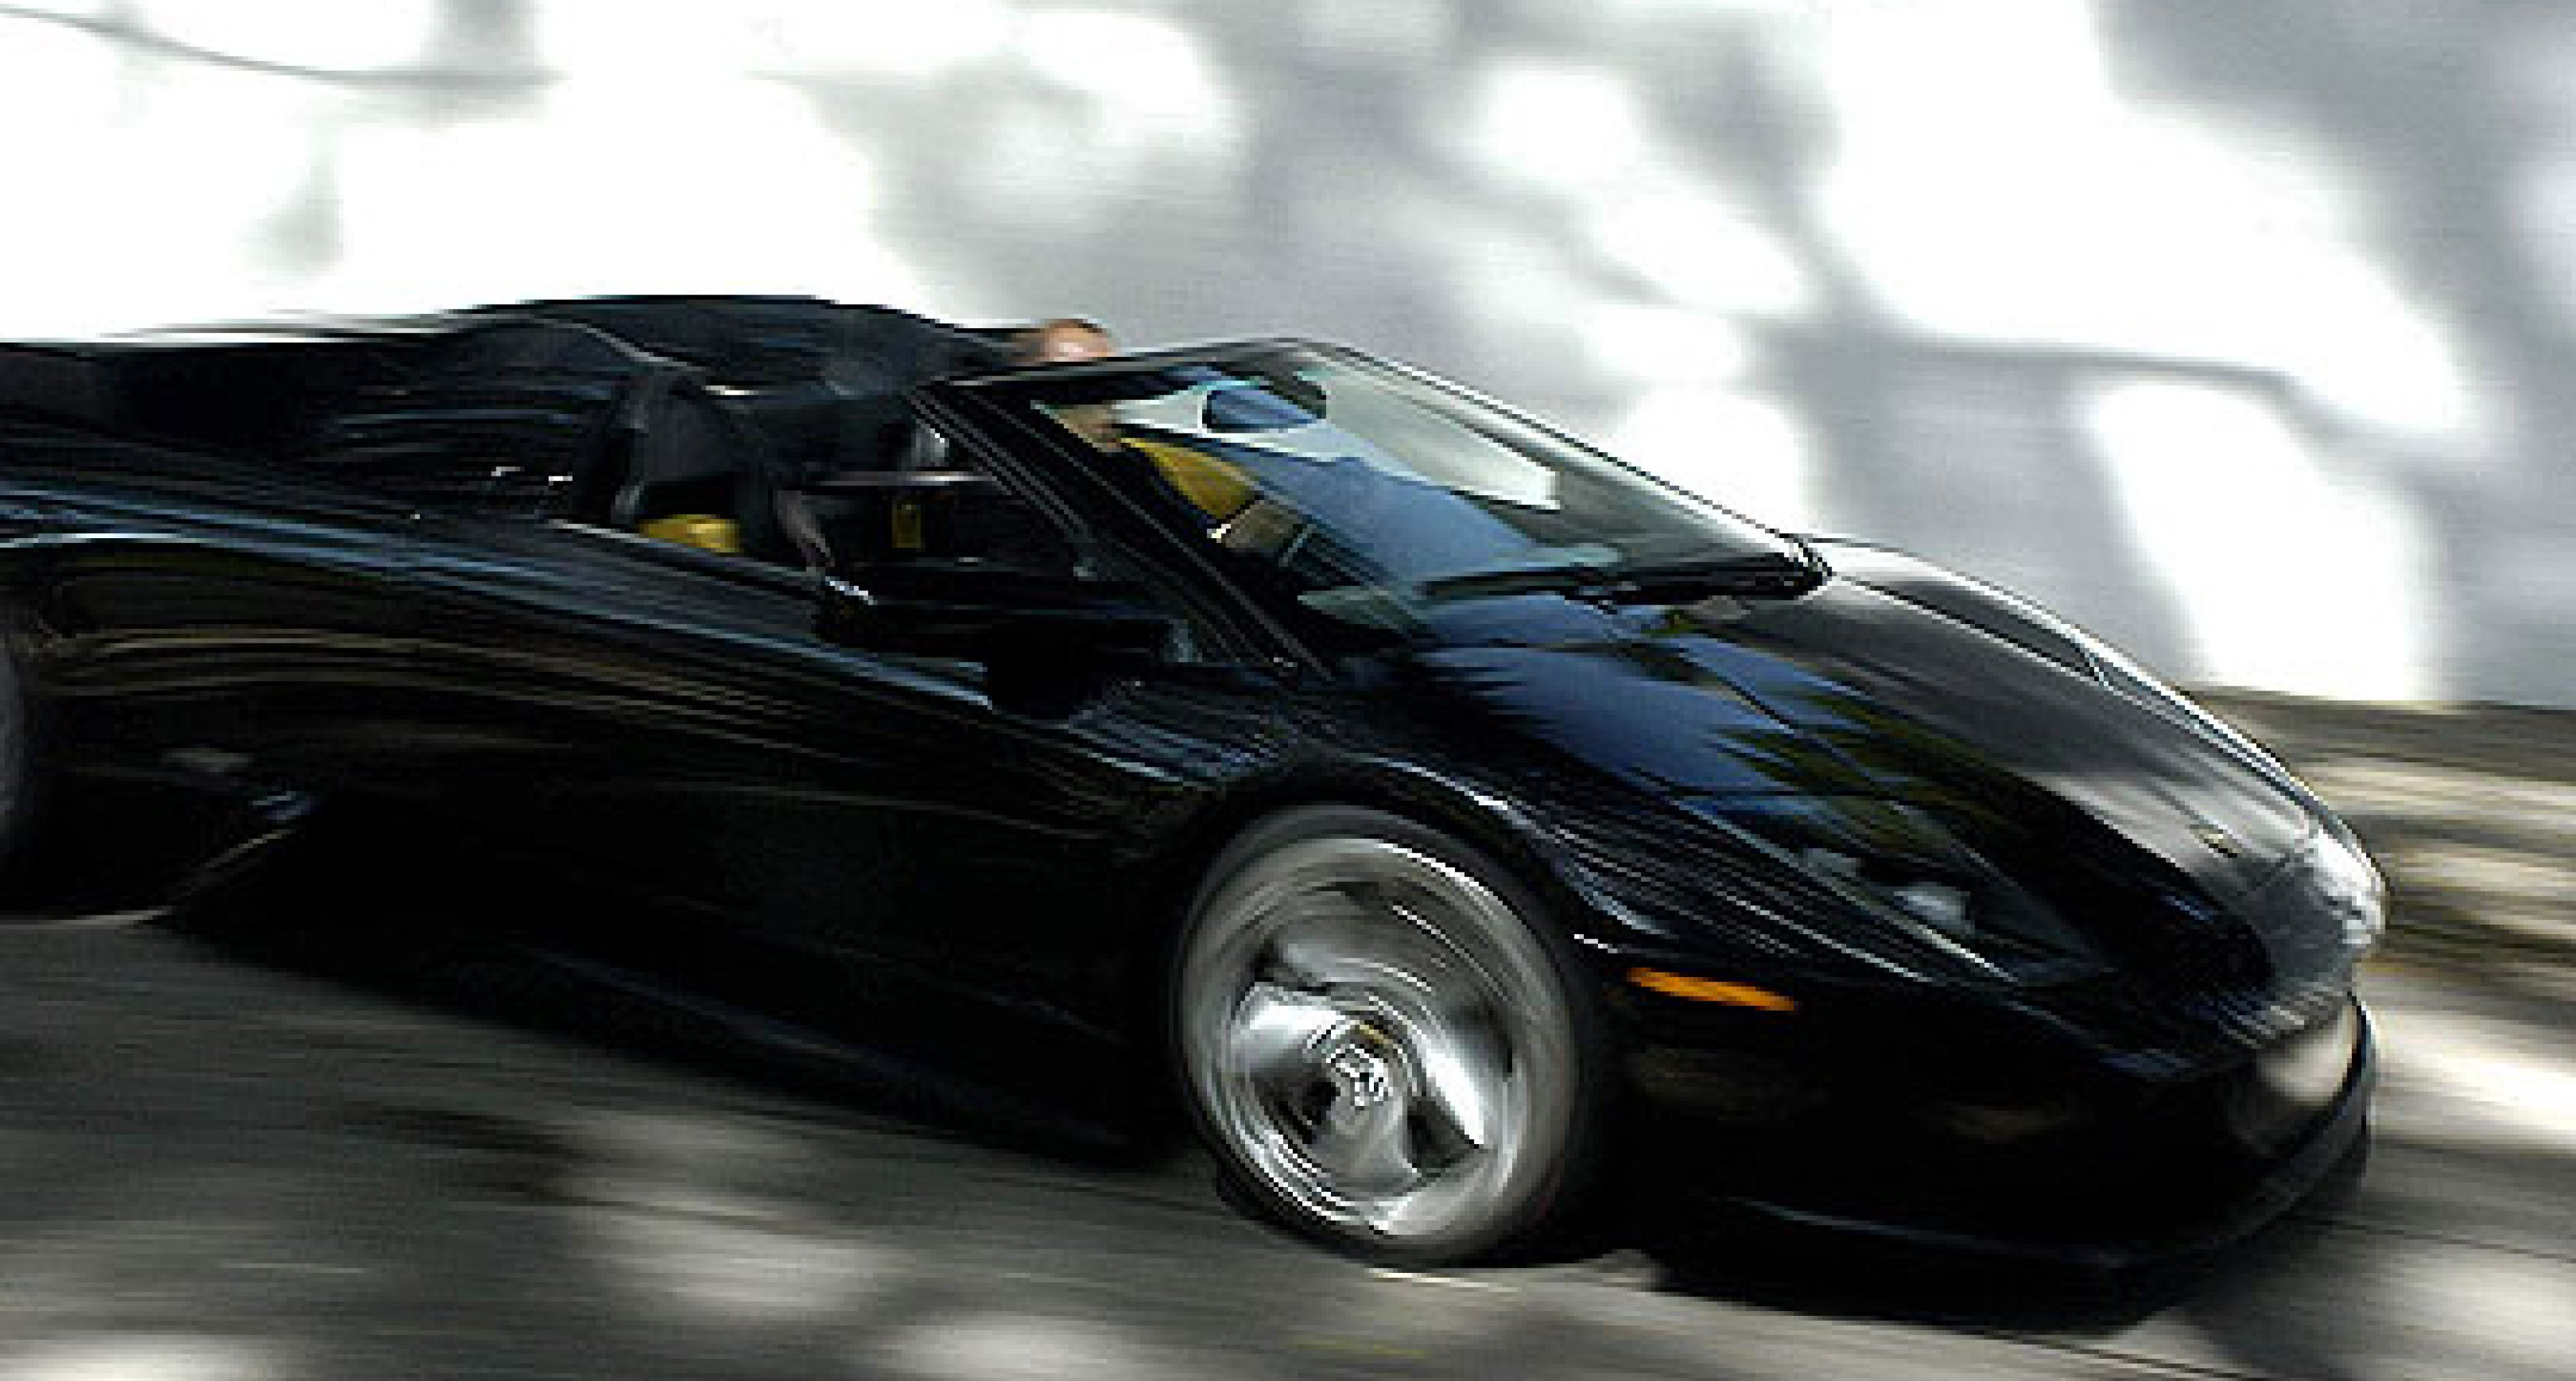 The Murciélago Roadster becomes a movie star